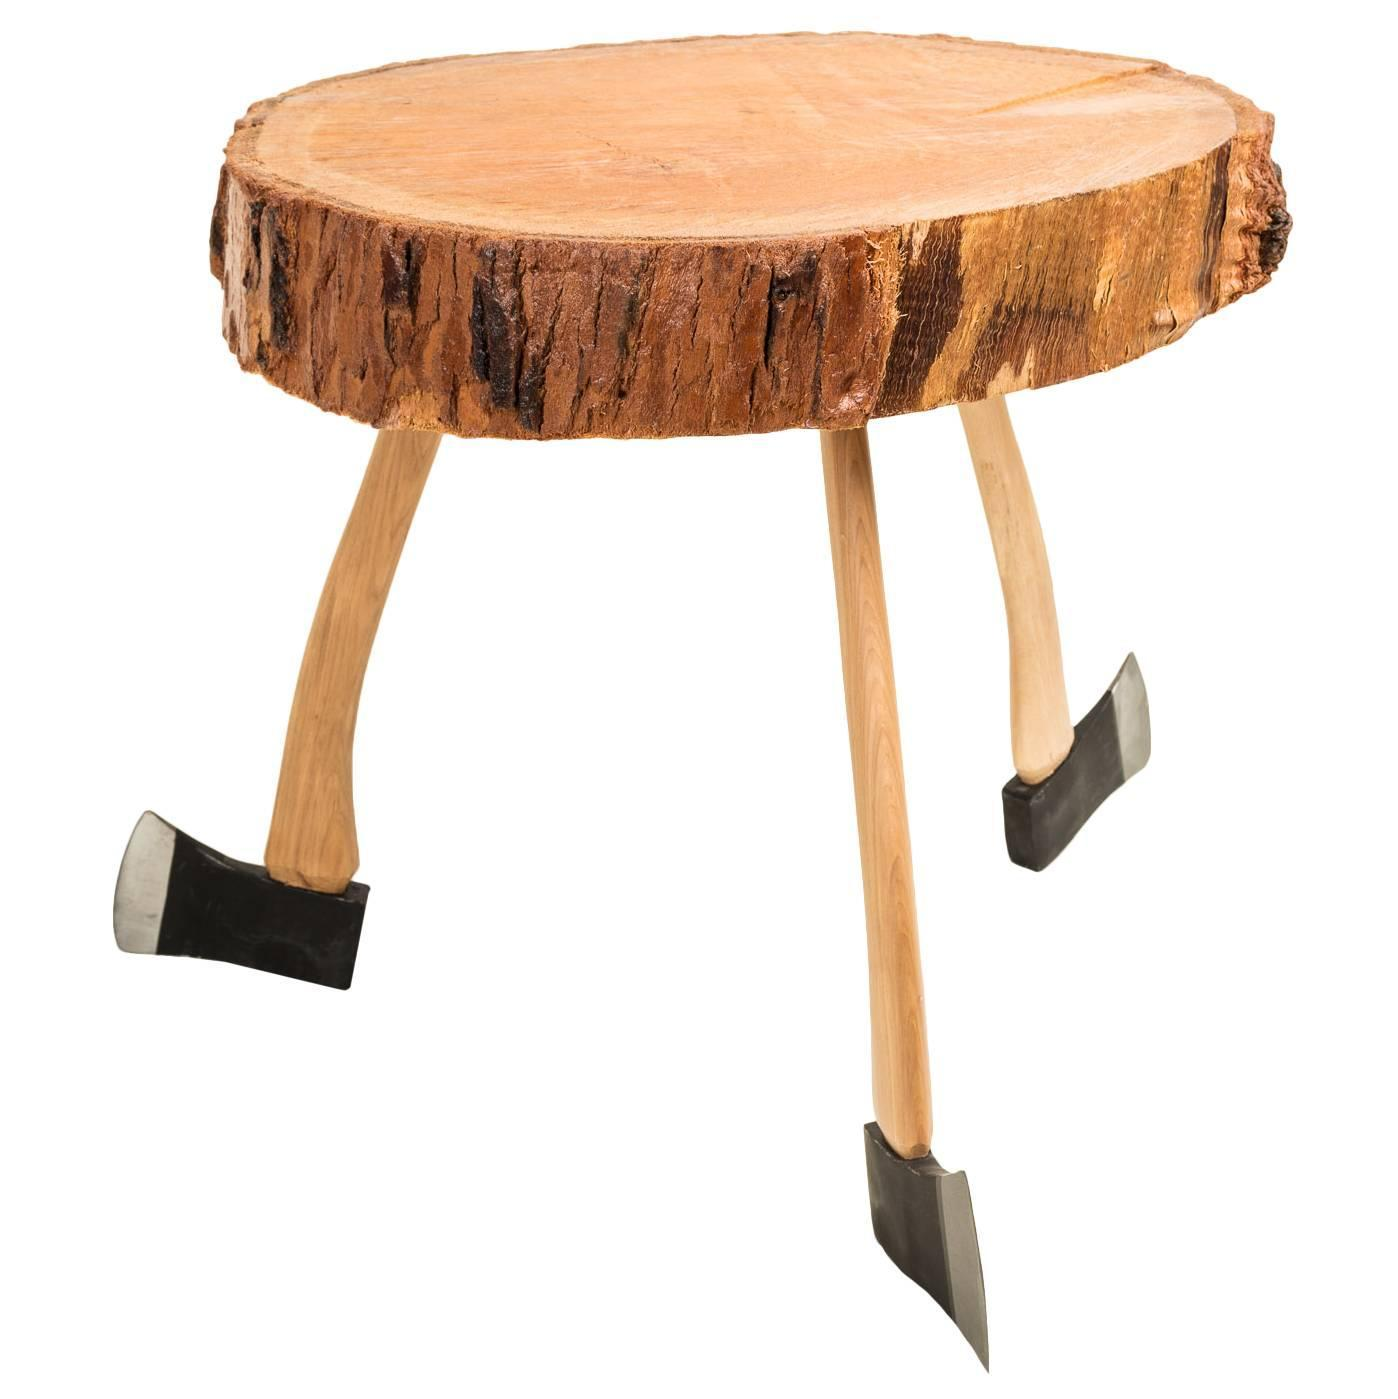 Axe Handle Base Rustic Pine Coffee Table For Sale at 1stdibs